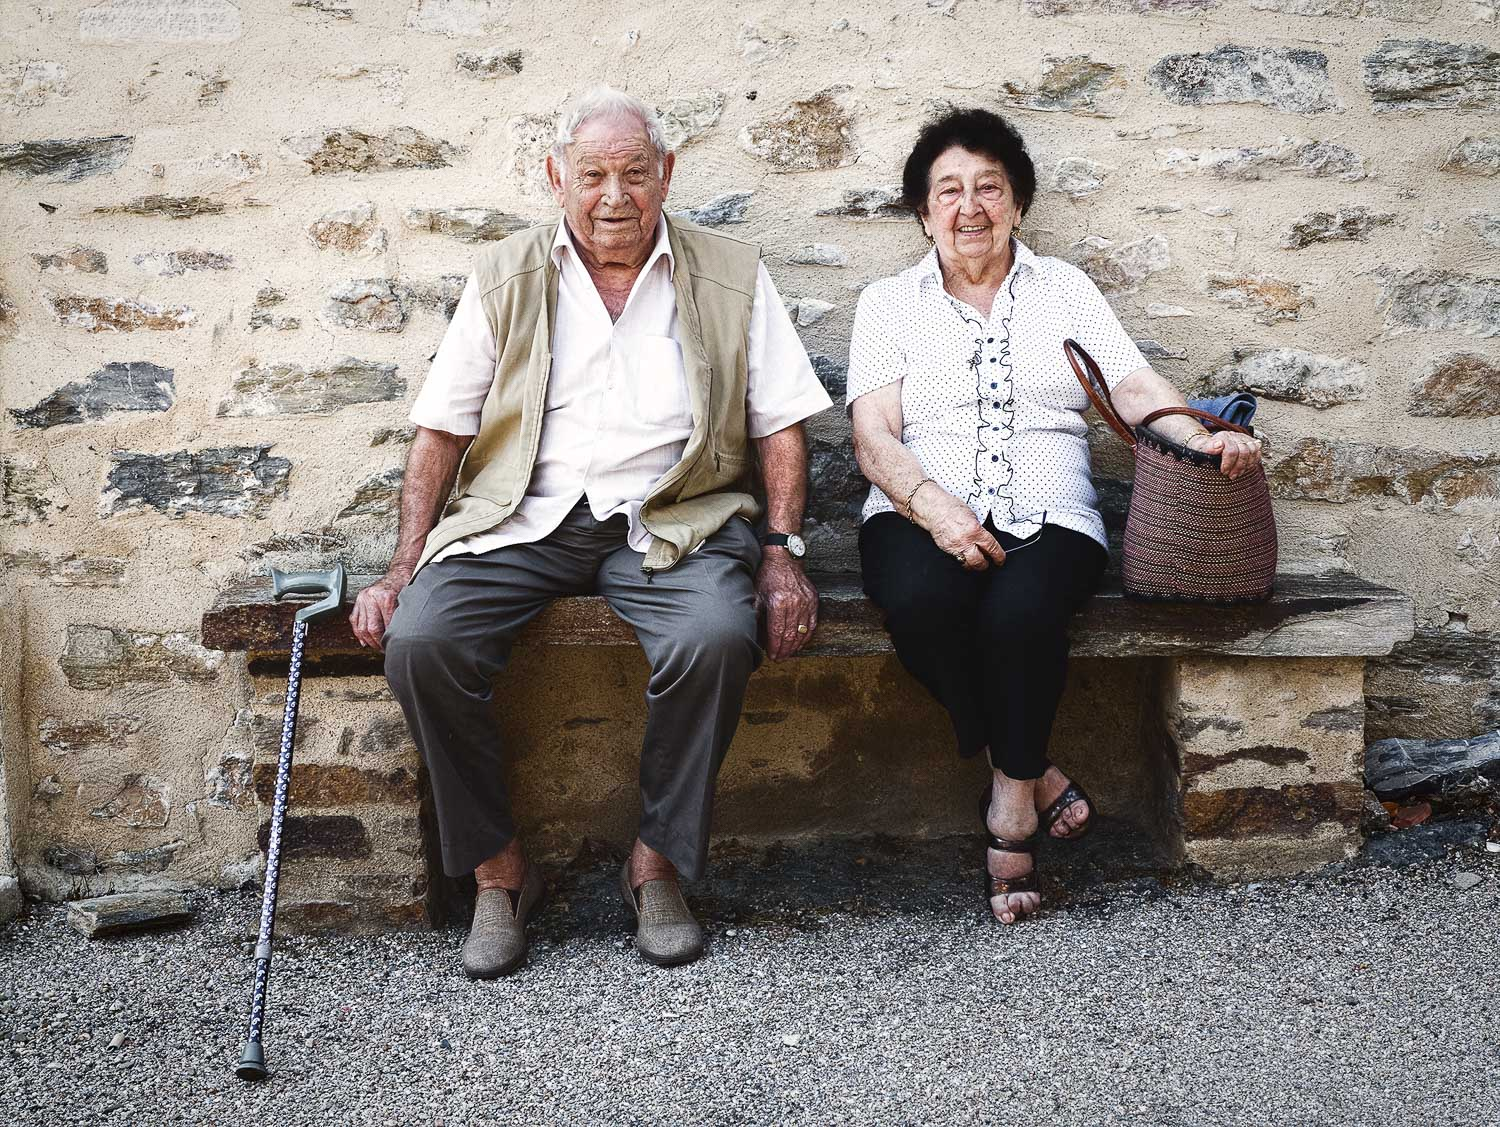 cute-old-couple-france.jpg